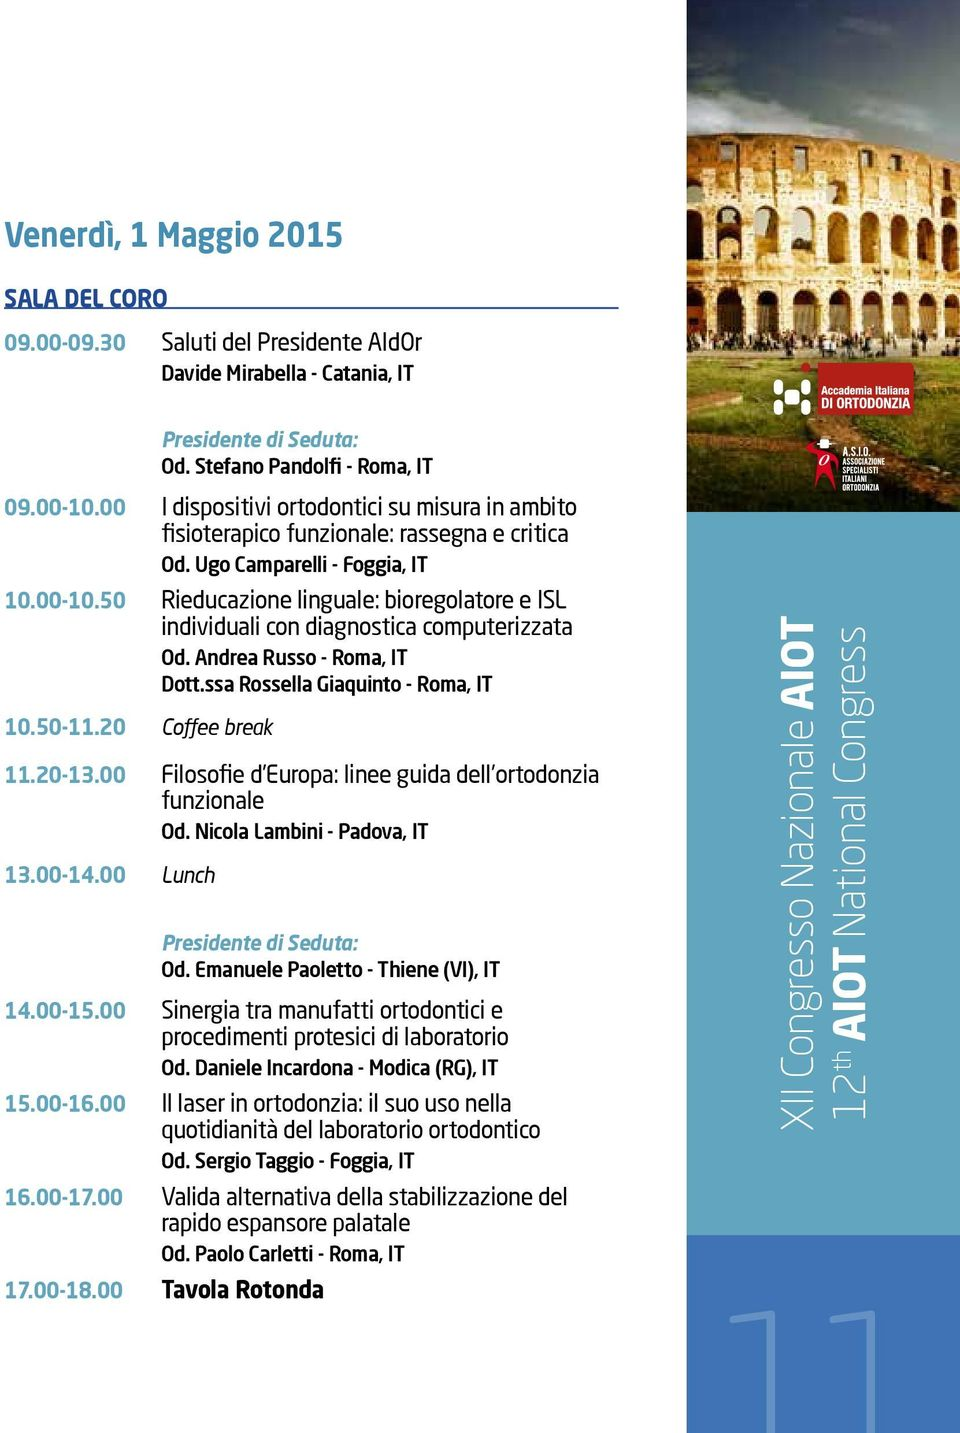 50 Rieducazione linguale: bioregolatore e ISL individuali con diagnostica computerizzata Od. Andrea Russo - Roma, IT Dott.ssa Rossella Giaquinto - Roma, IT 10.50-11.20 Coffee break 11.20-13.